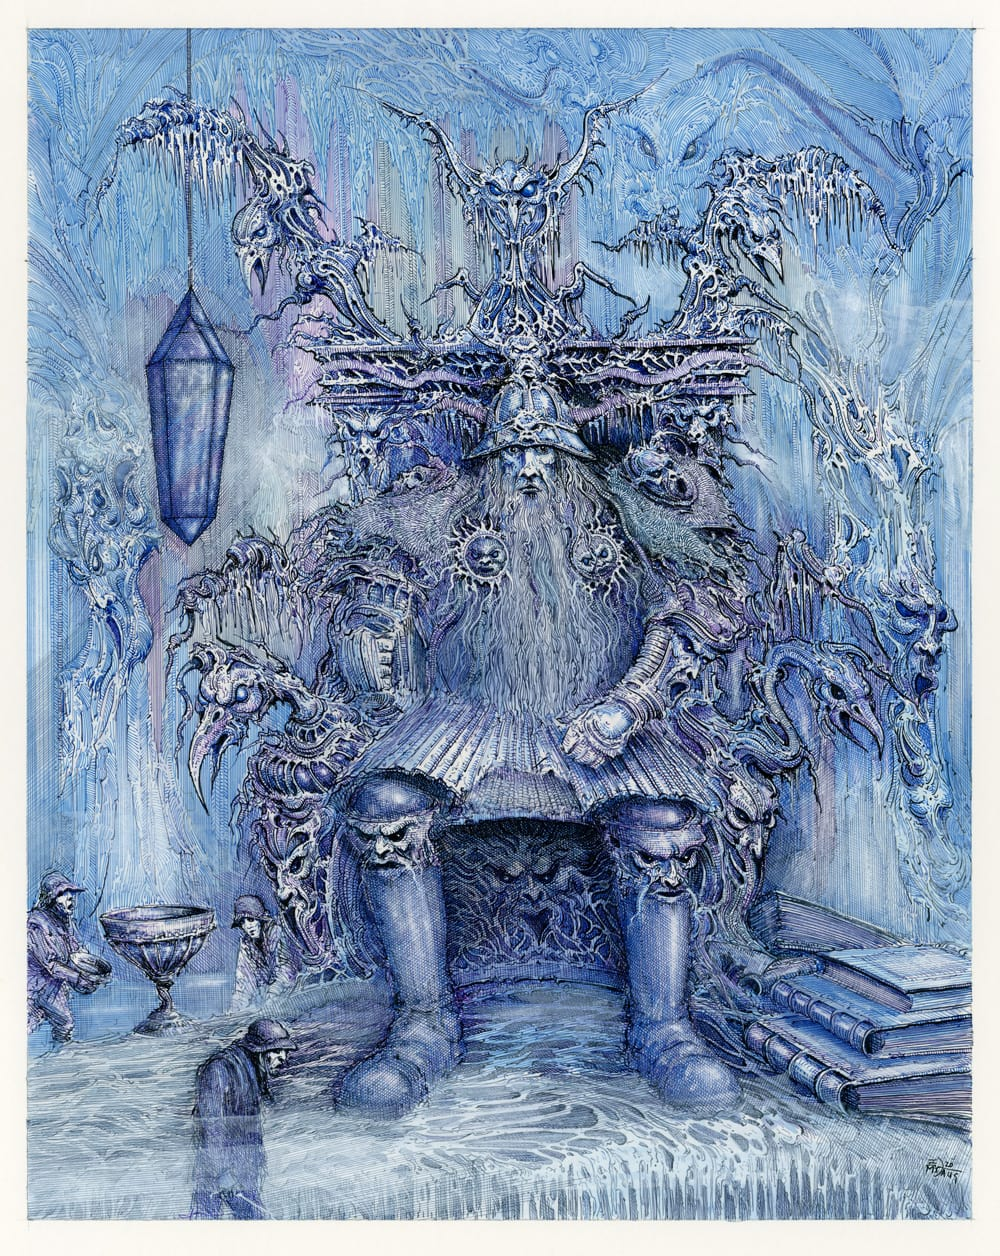 The Ice King Pen and ink on illustration board 28cm x 35.5cm (2020) £1,000.00